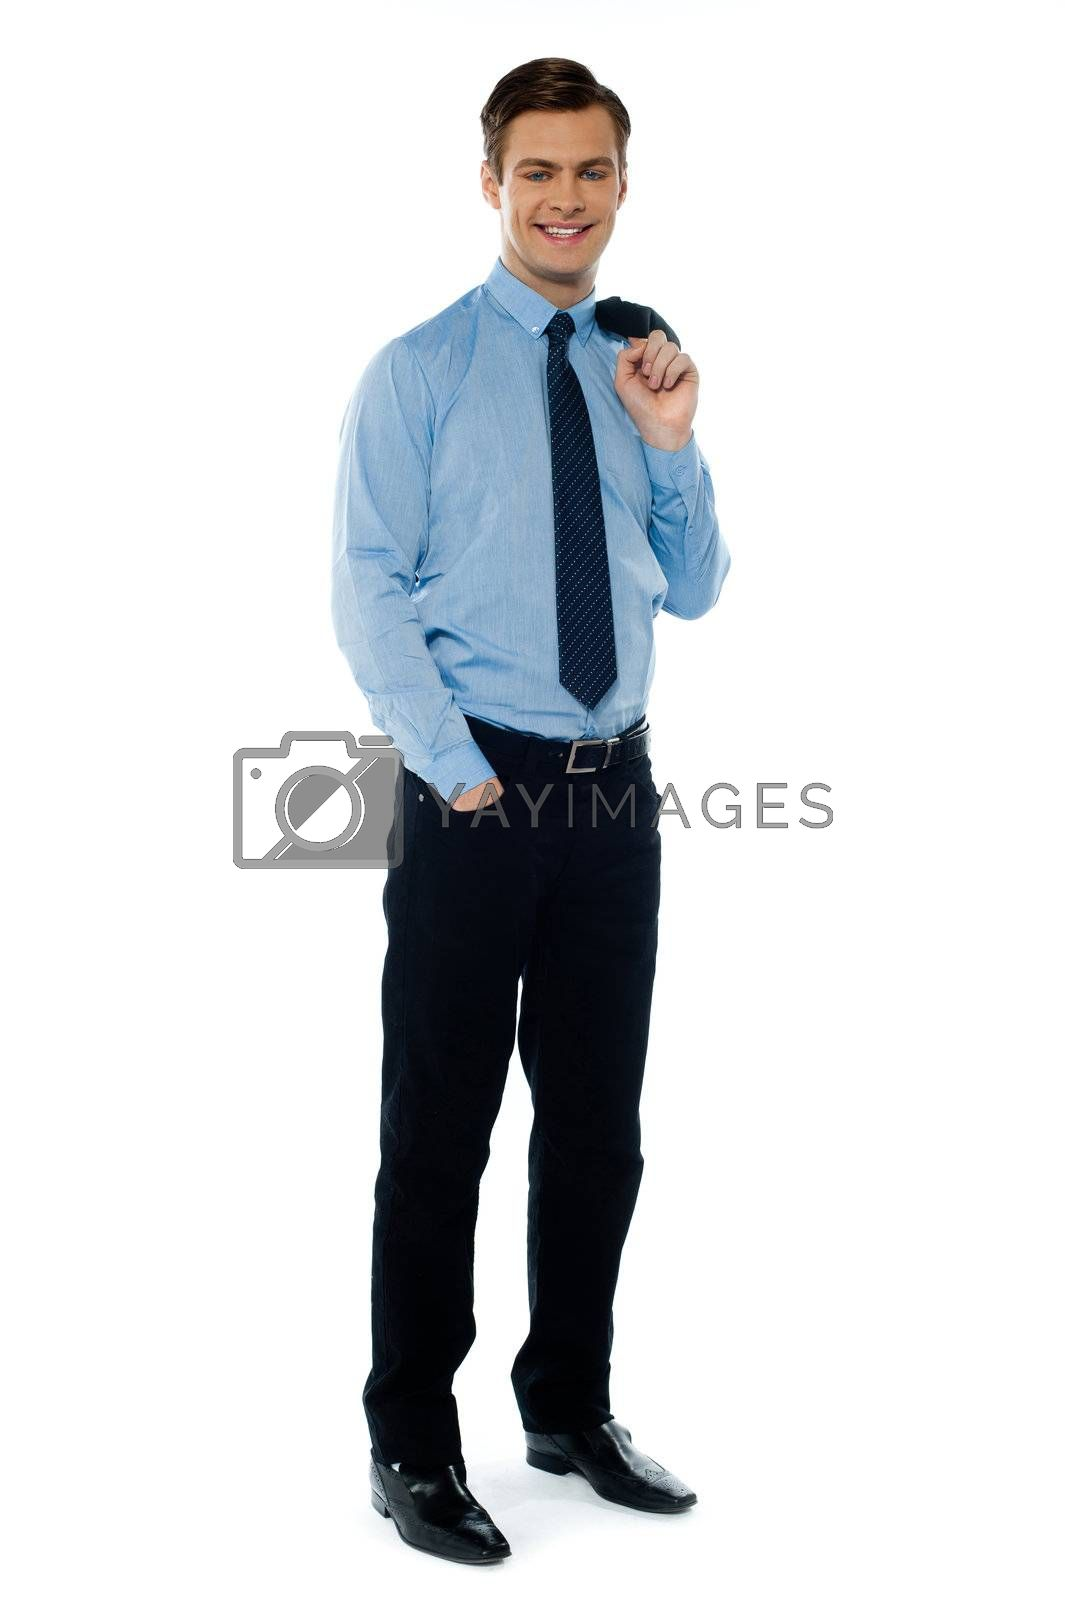 Portait of a professional businessman holding his coat and posing in style